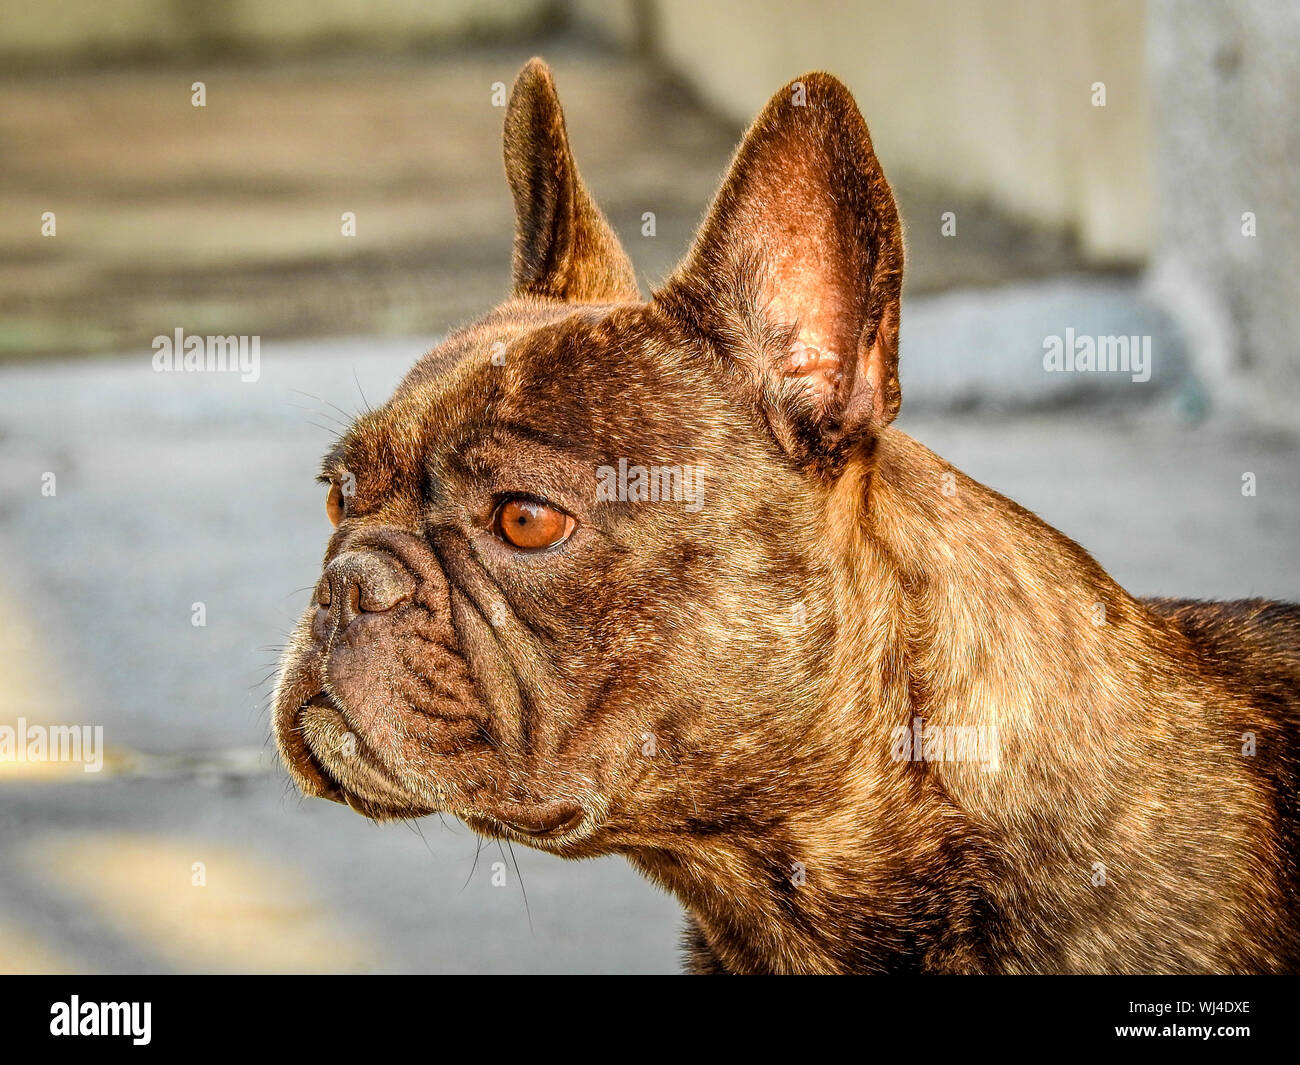 Brown French Bulldog High Resolution Stock Photography And Images Alamy